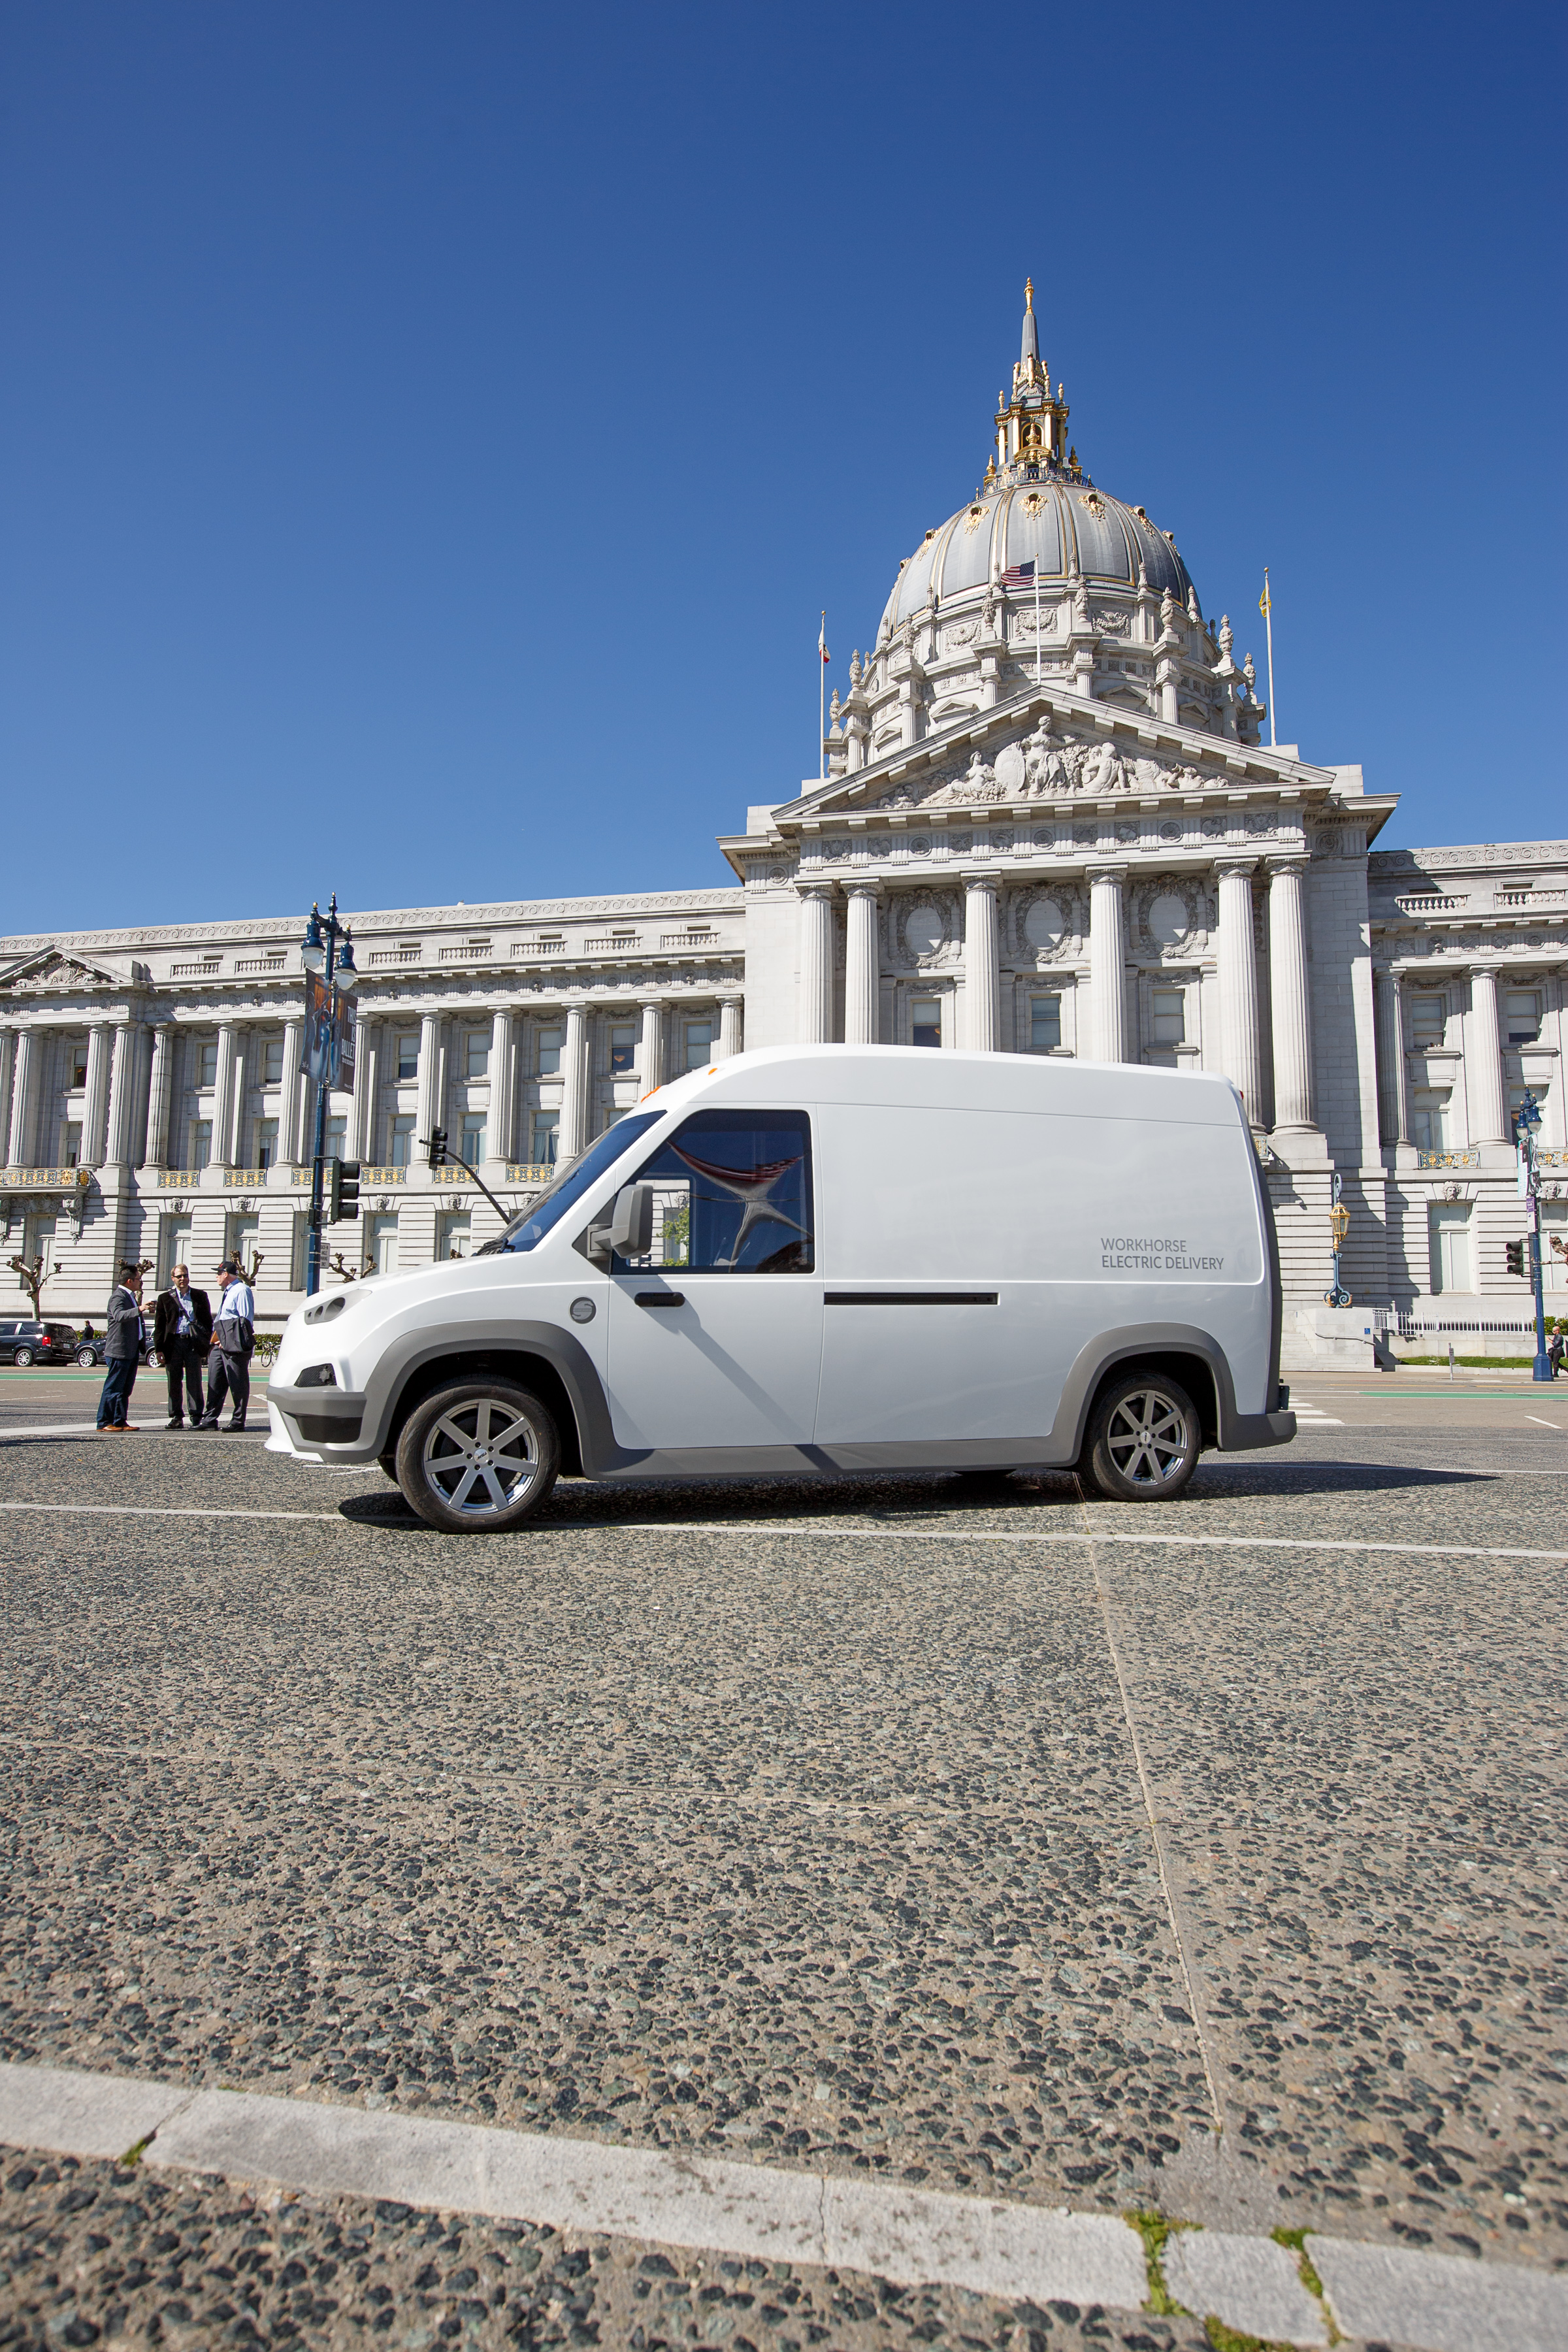 Workhorse Says That The New N Gen Electric Van Has A Range Of 100 Miles 160 Km On Single Charge Which Should Be Enough For Most Delivery Routes